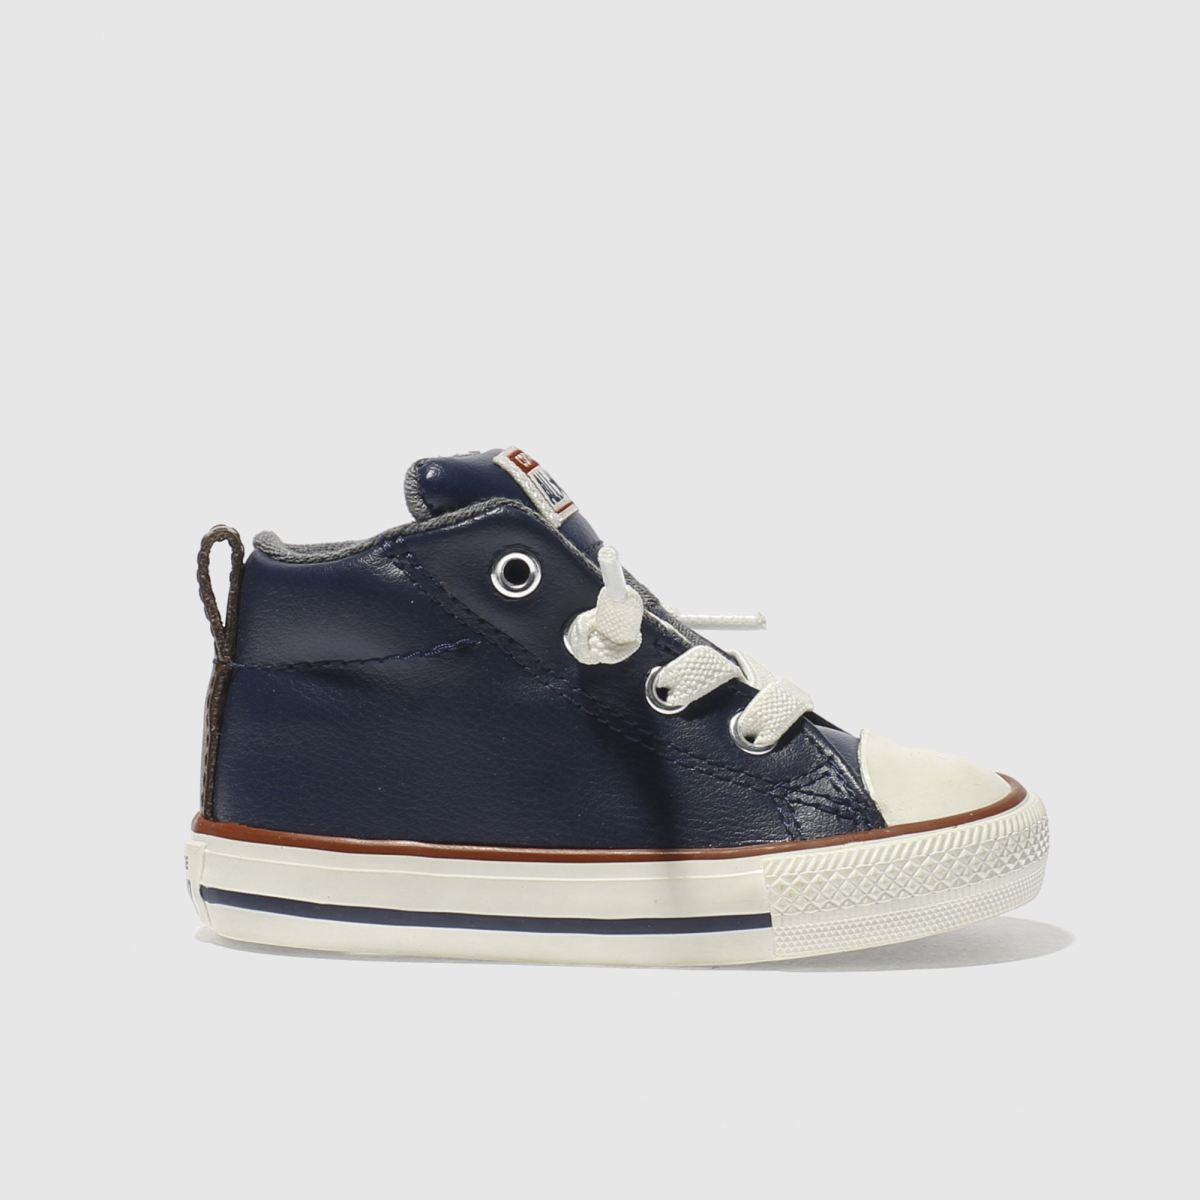 converse navy all star street mid Boys Toddler Trainers